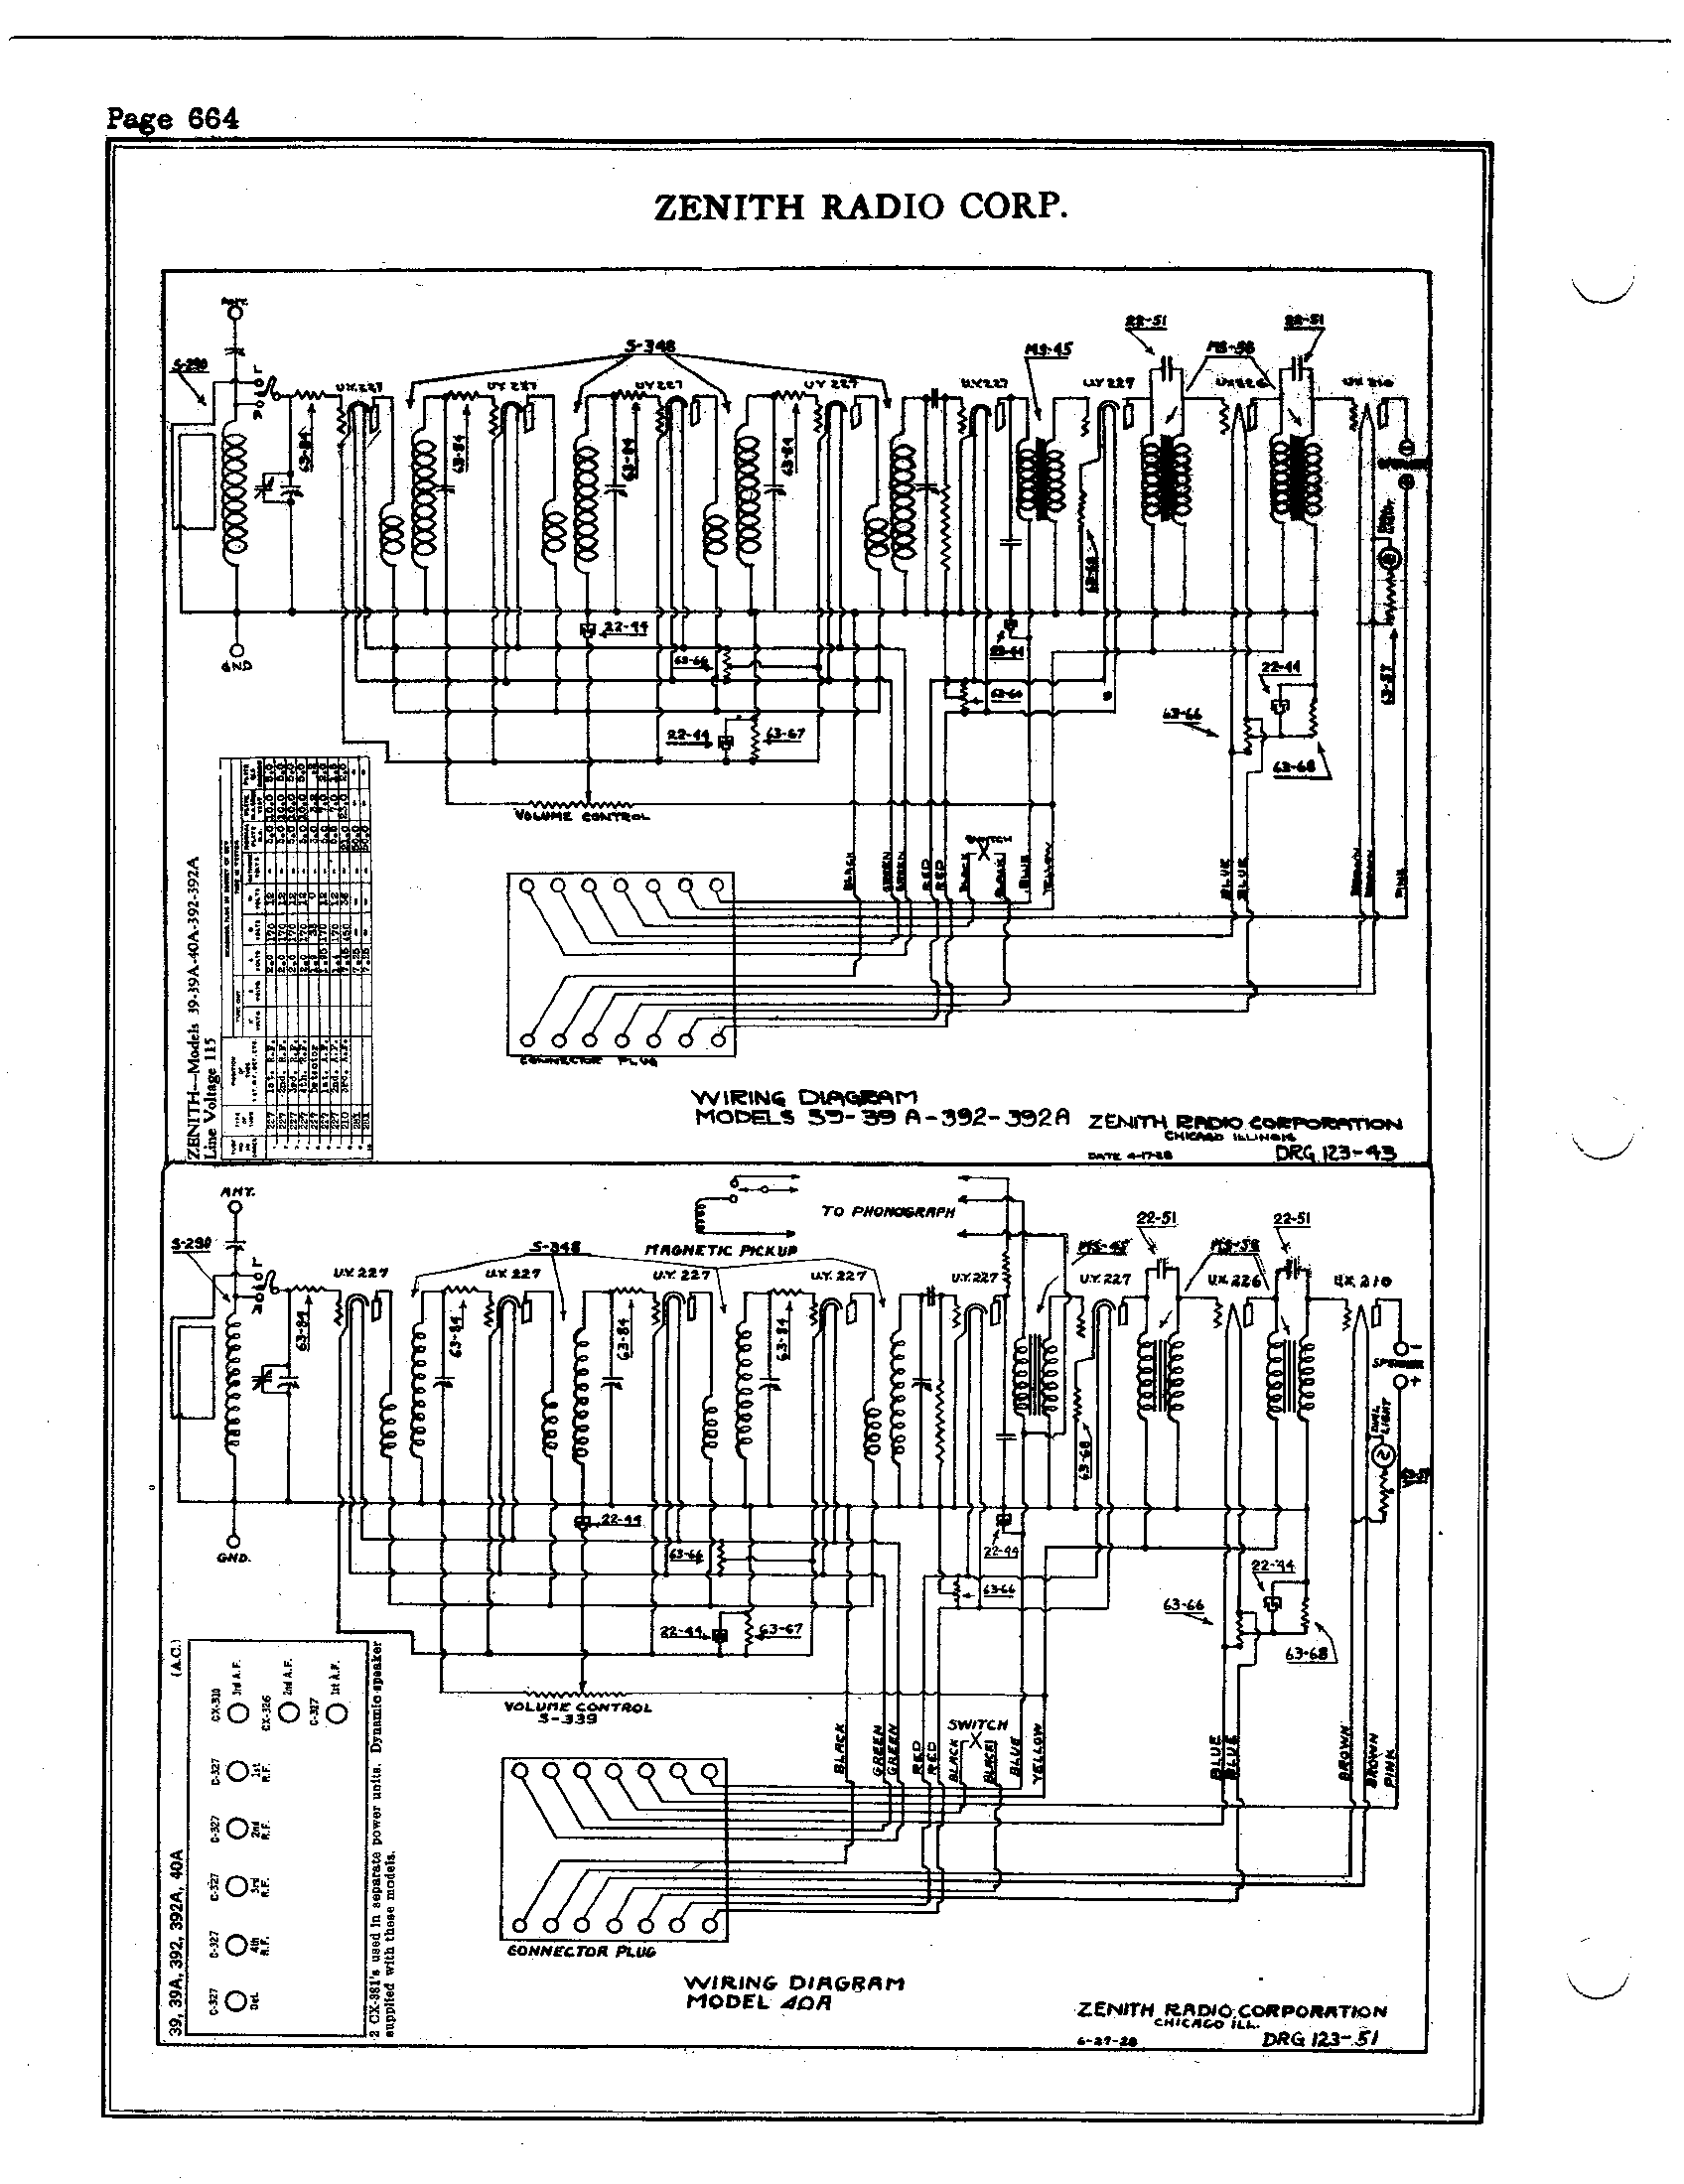 Zenith Radio Corp 40a Antique Electronic Supply. Page 1 6713 Kb Rider Manual Volume. Wiring. Zenith Tube Radio Schematics 39a At Scoala.co